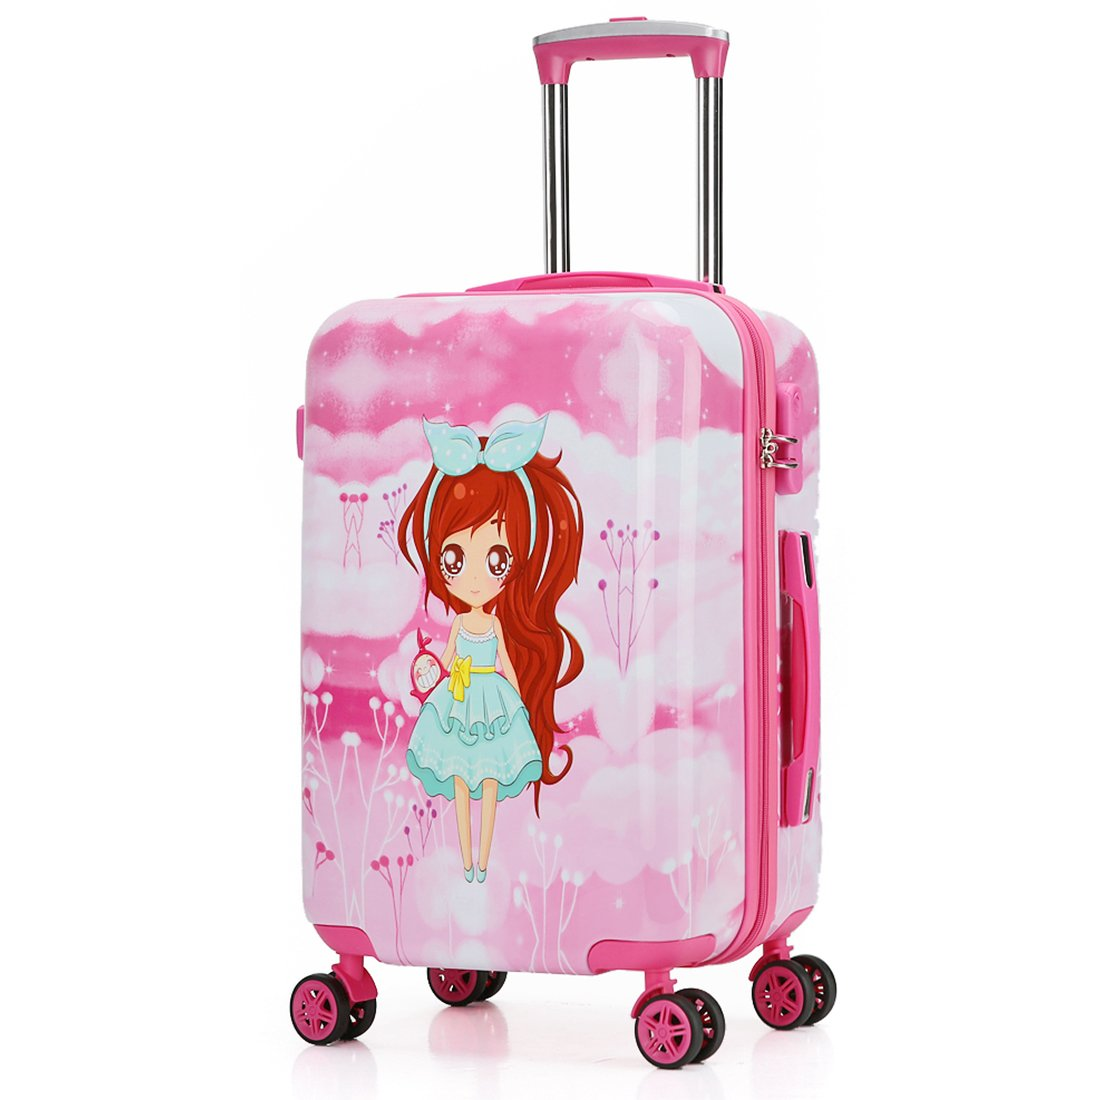 Kids Luggage Carry On Luggage With Spinner Wheels Toddlers Teenage Children Boys And Girls Travel Trolley Case (20inch, Pink Fairy Girl) by TOKERS